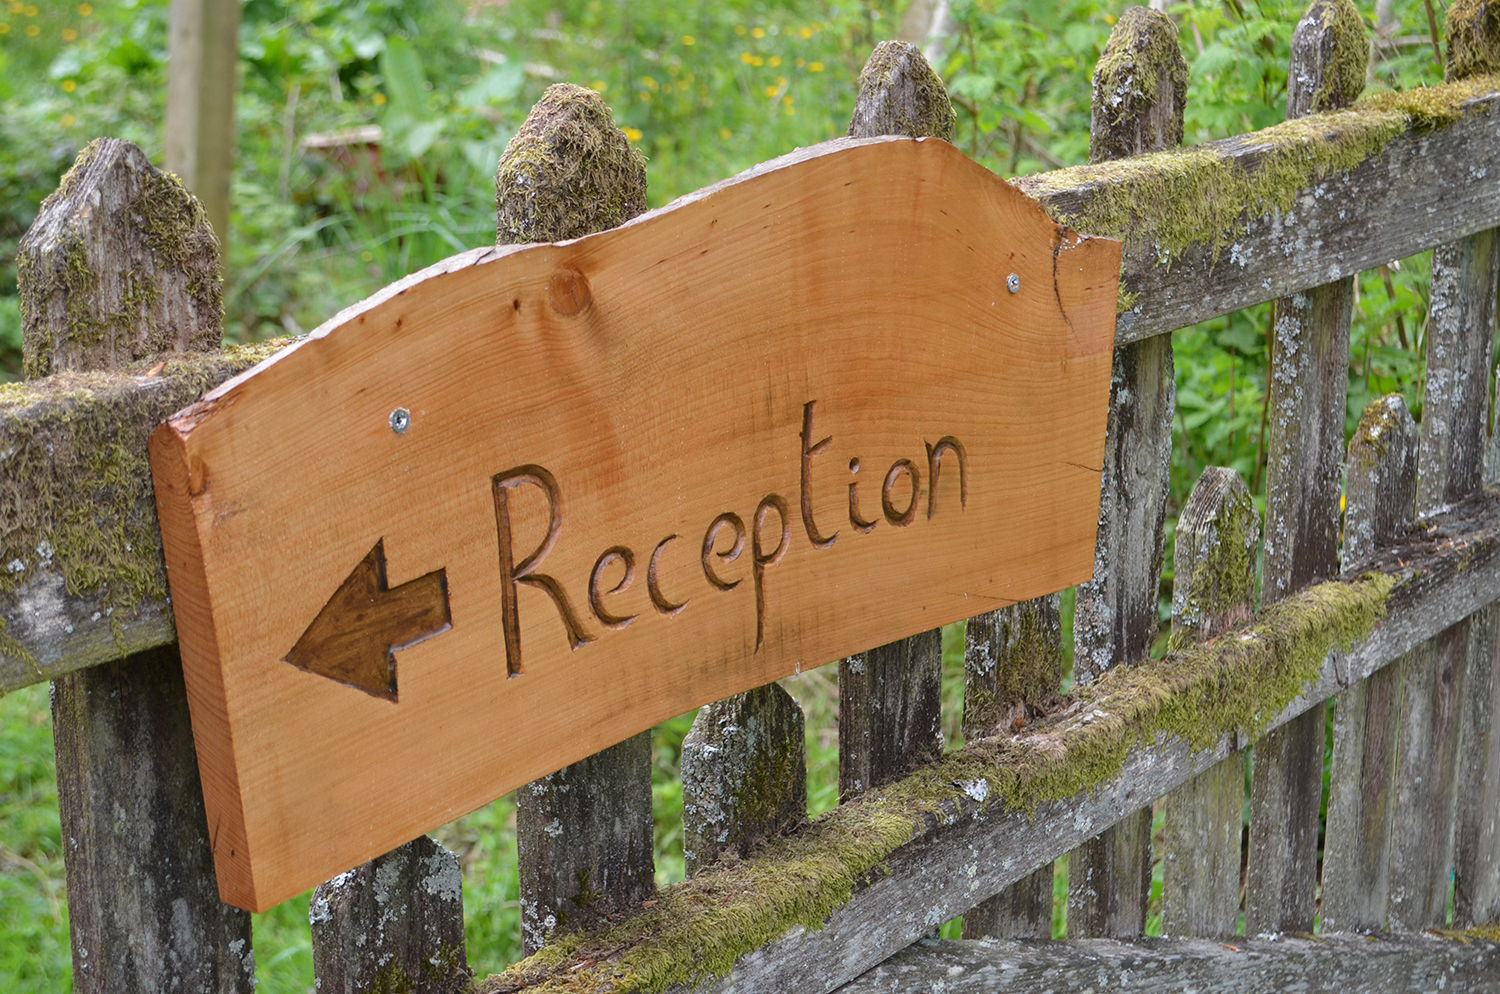 reception open from 9am